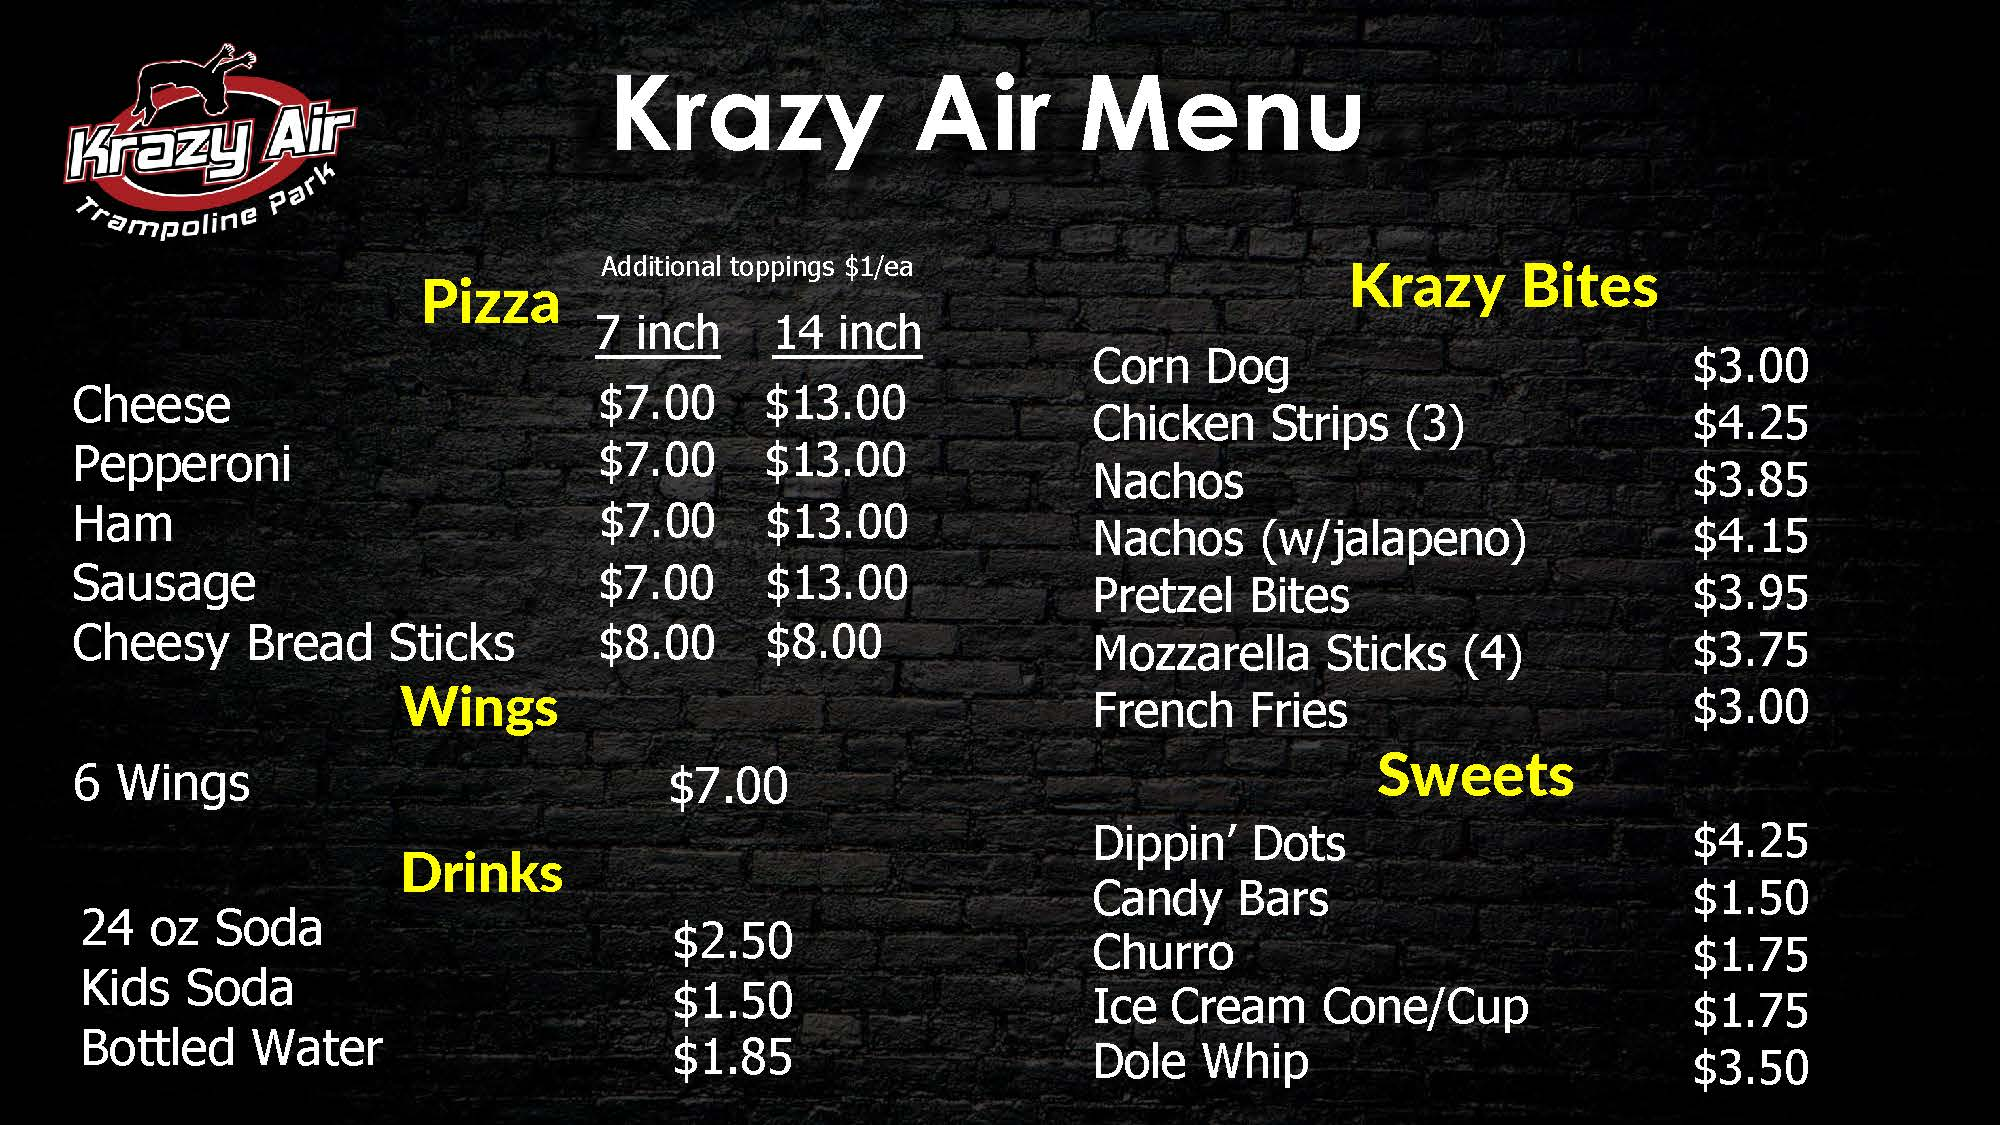 Krazy Air Pricing Menus NOV 2019 (1)_Page_2 (1)